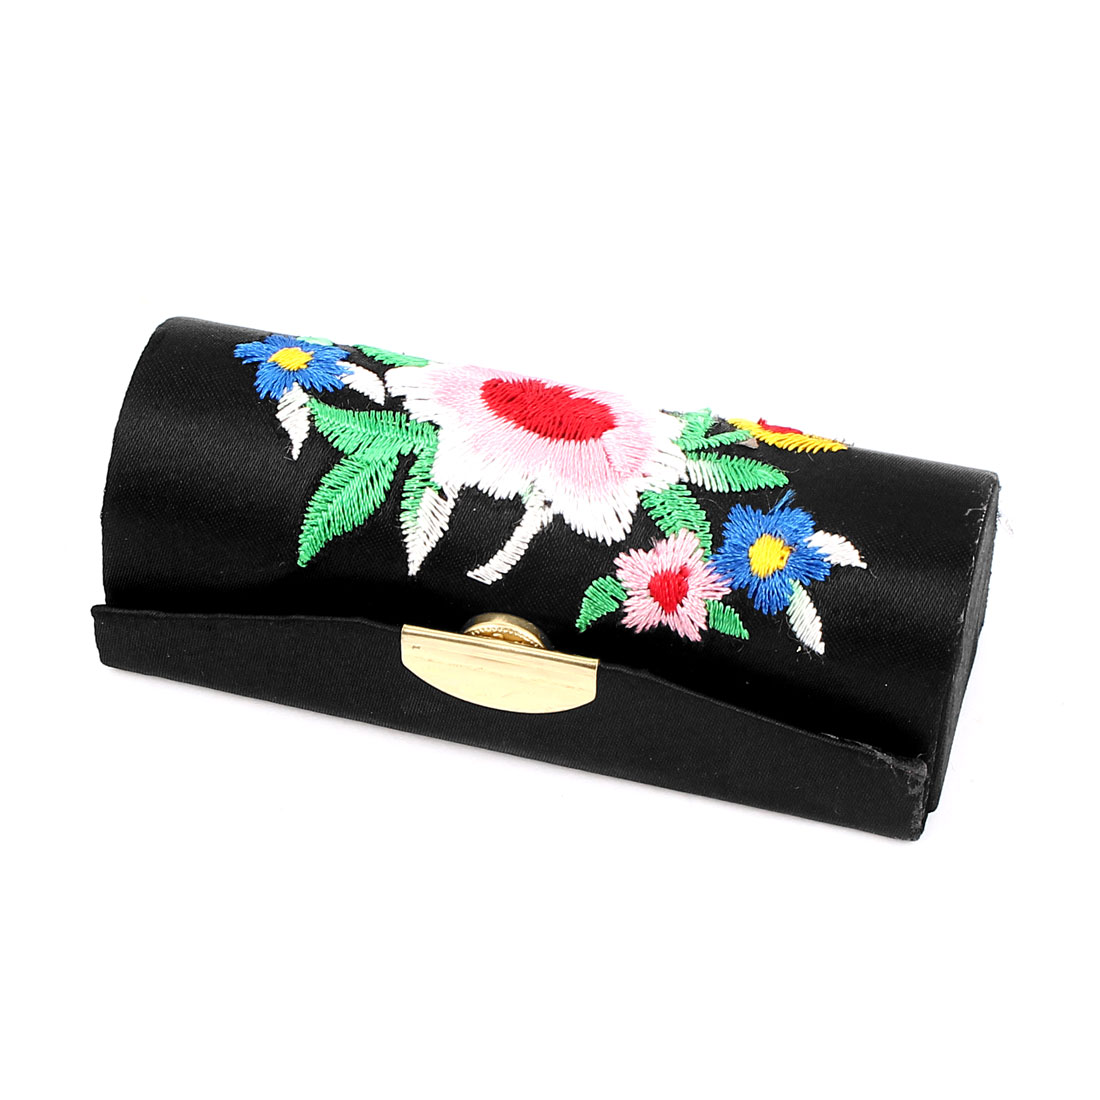 Lady Flower Embroidery Press Stud Closure Lipstick Lip Balm Chap Stick Case Box Holder Black